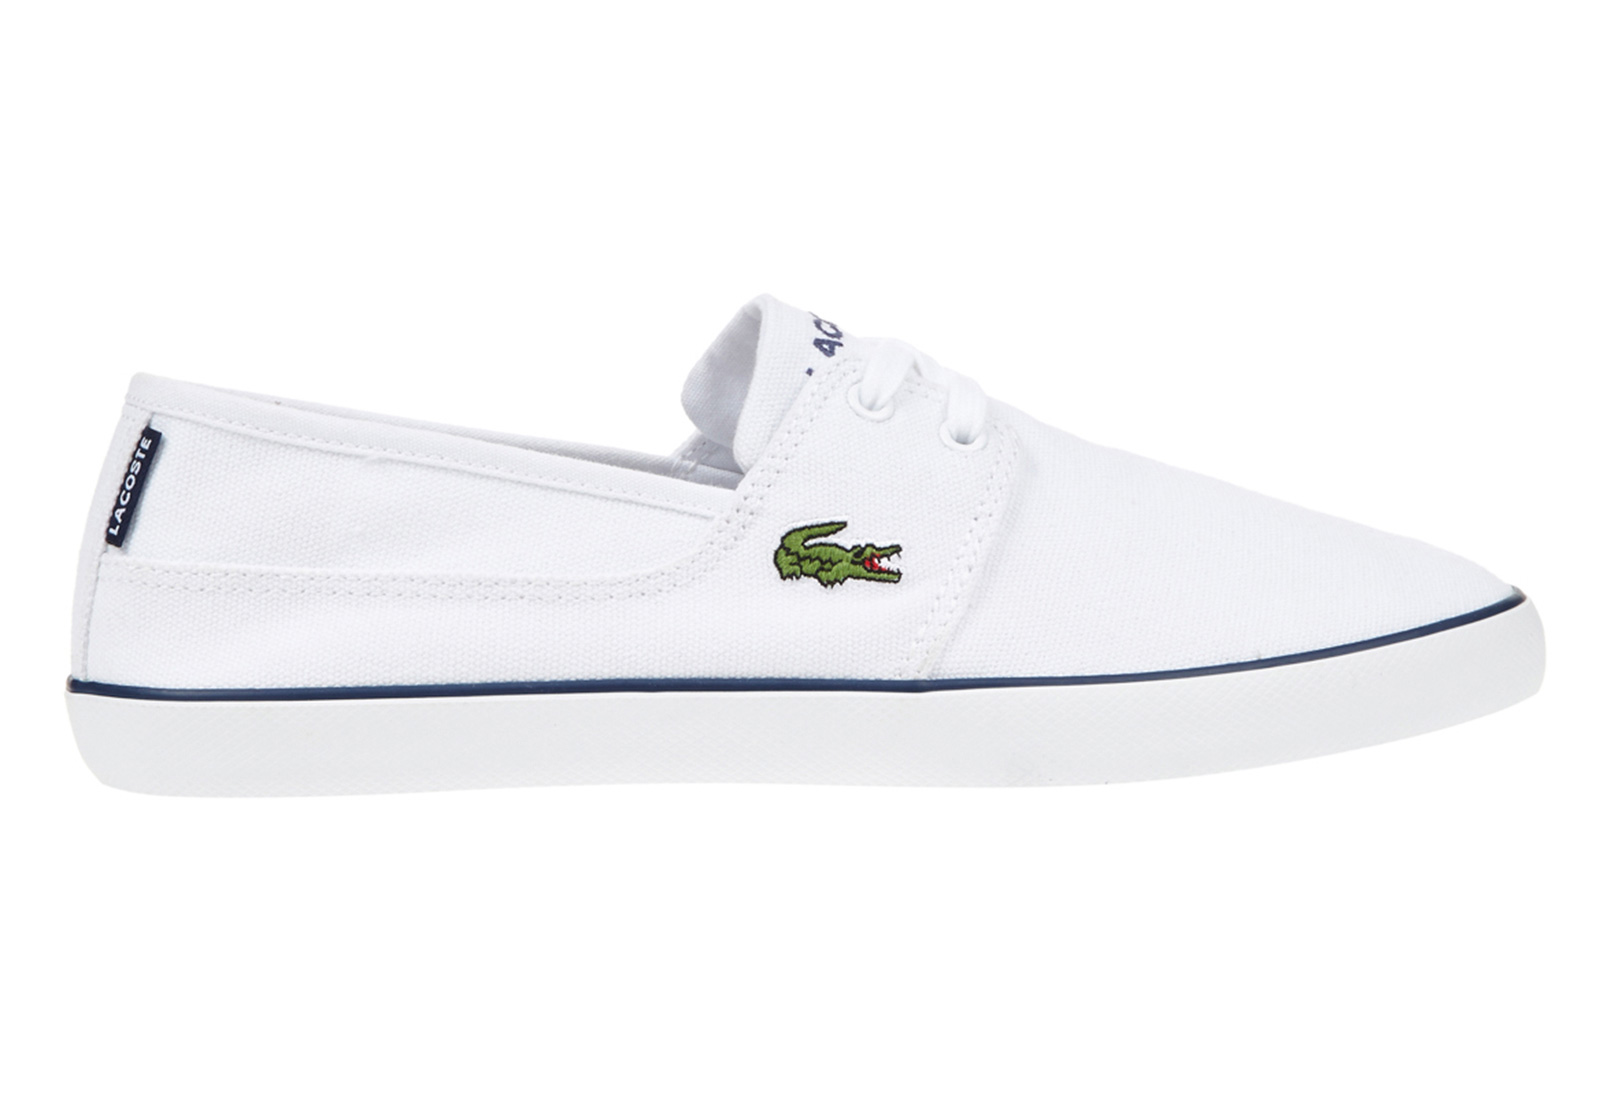 Elegant The Lacoste Agadel 3 Sneakers Amp Athletic Shoes Are Classic And Can